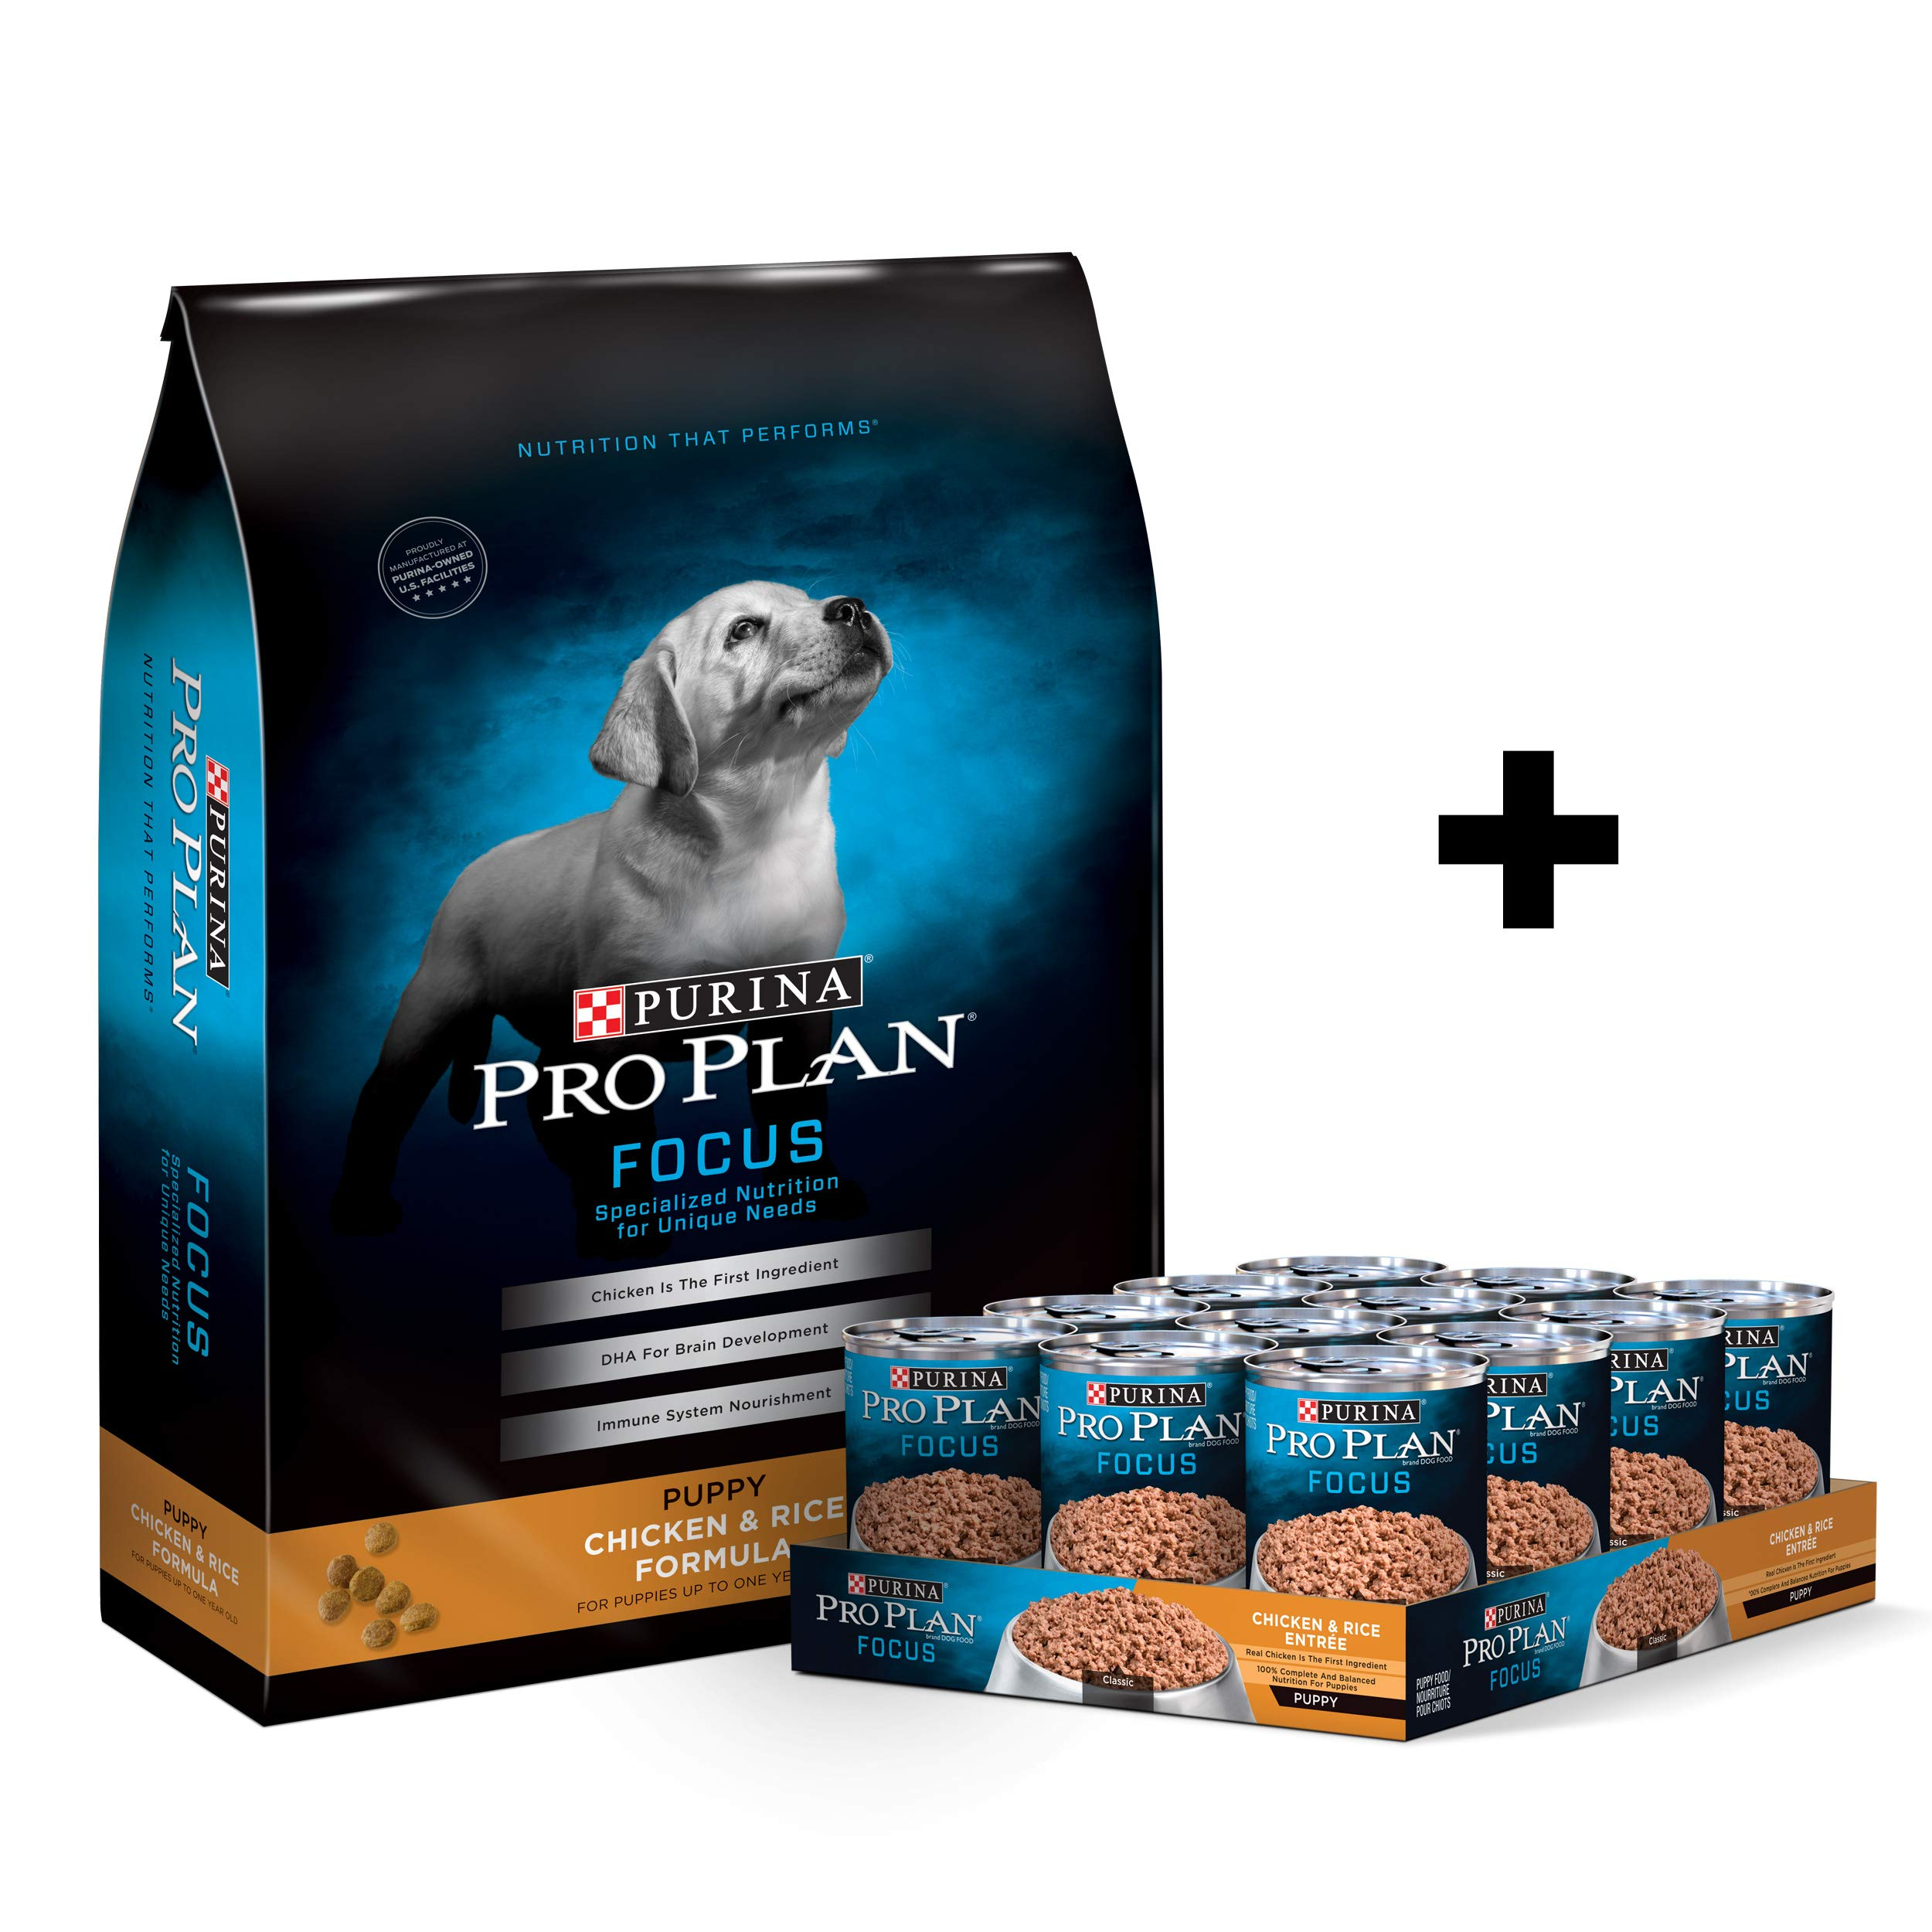 Purina Pro Plan Puppy - Dry Dog Food & Canned Wet Dog Food Bundle Package by Purina Pro Plan